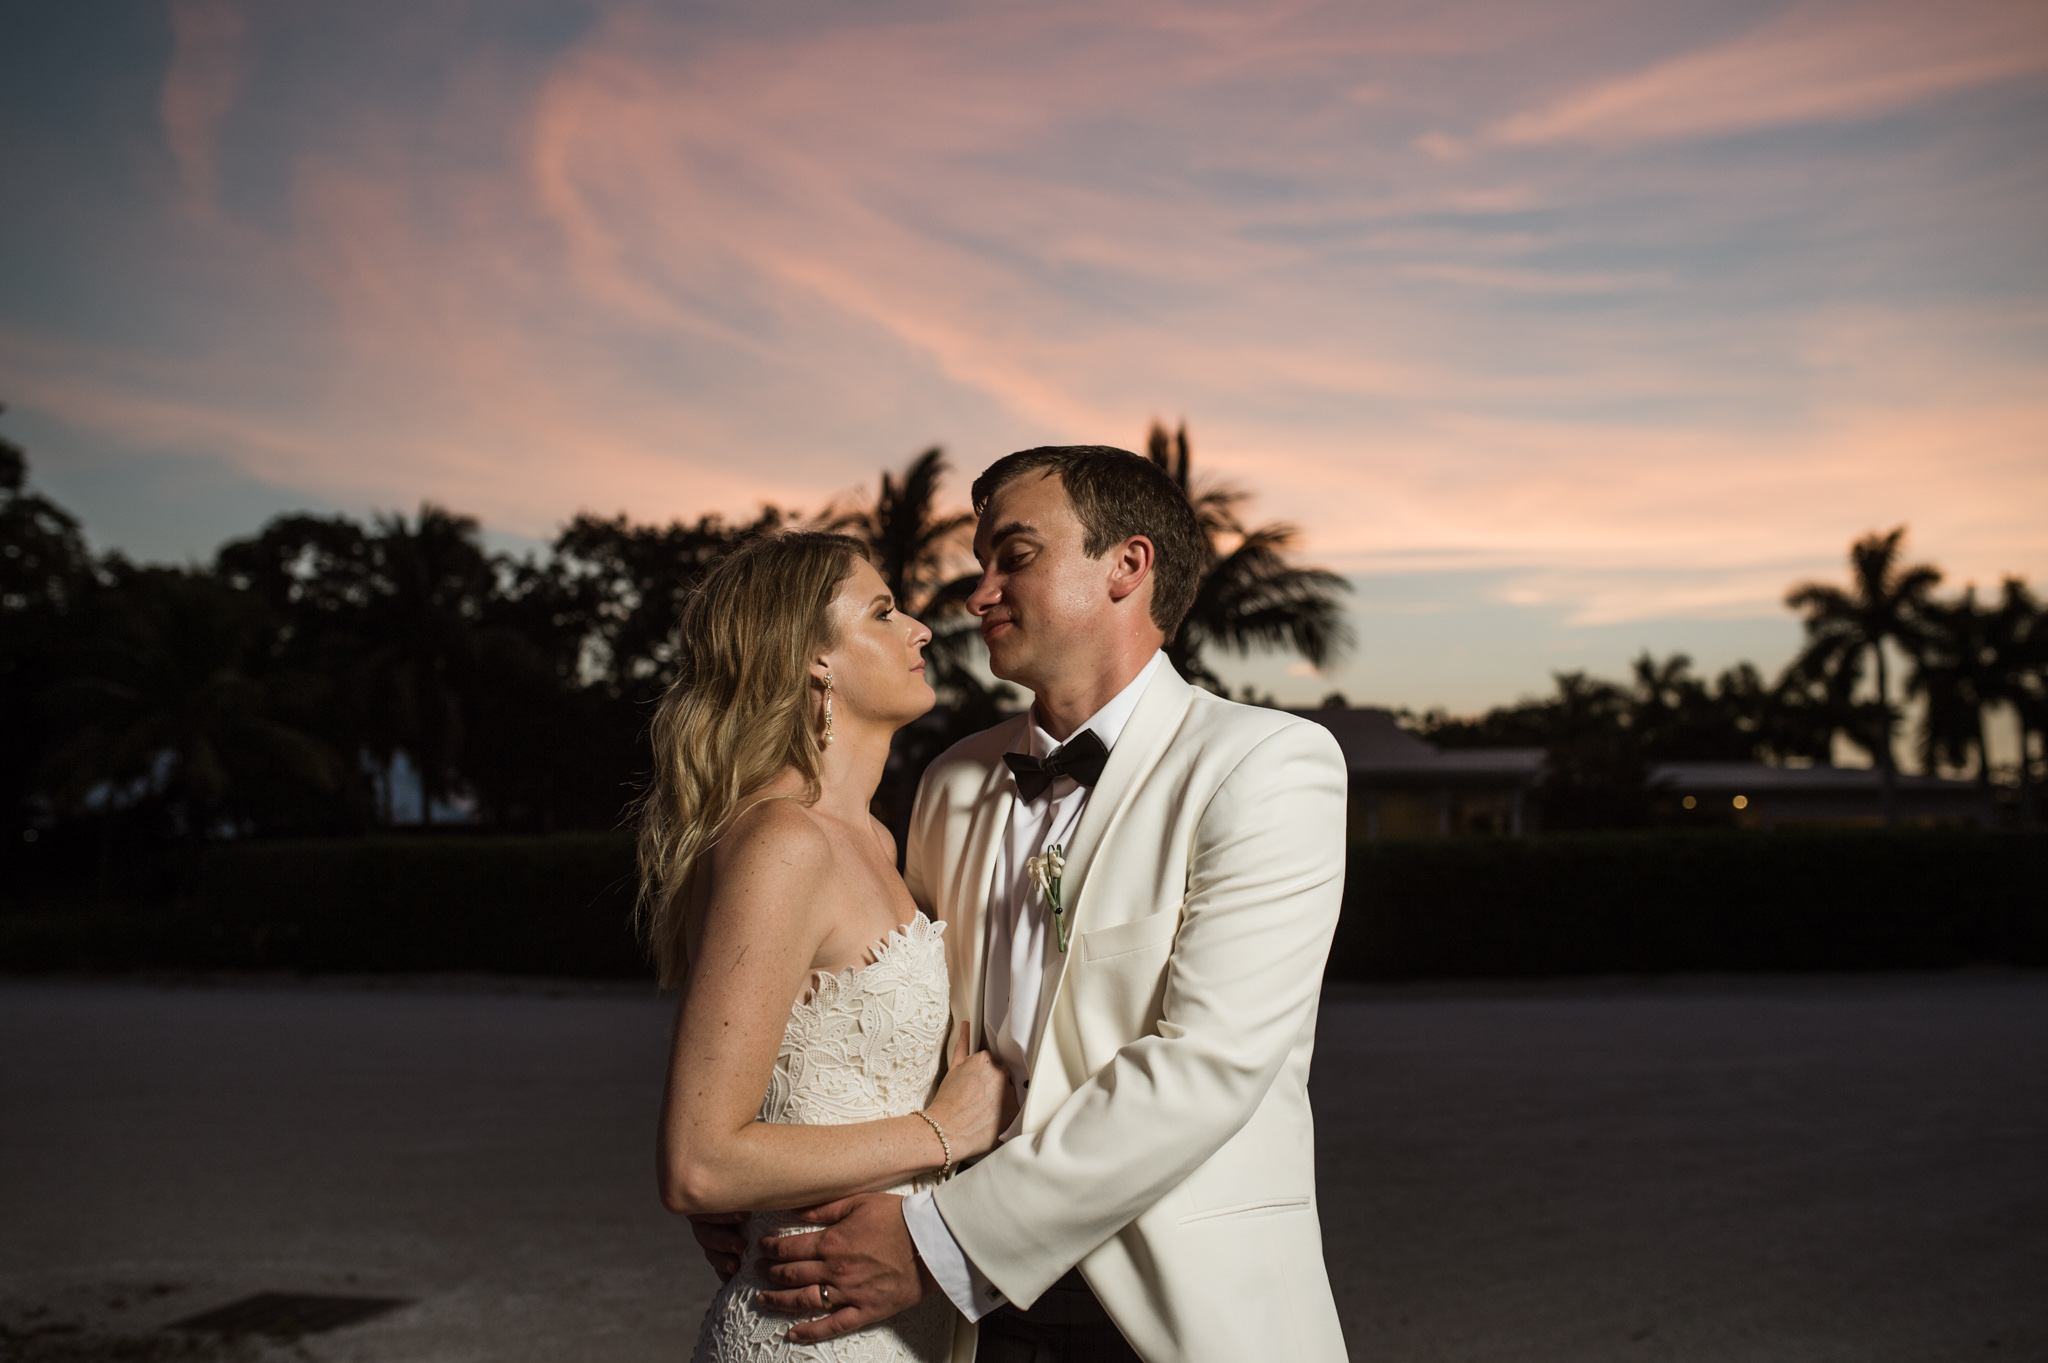 Dramatic Sunset Portrait of Bride and Groom at the Longboat Key Club in Sarasota, FL